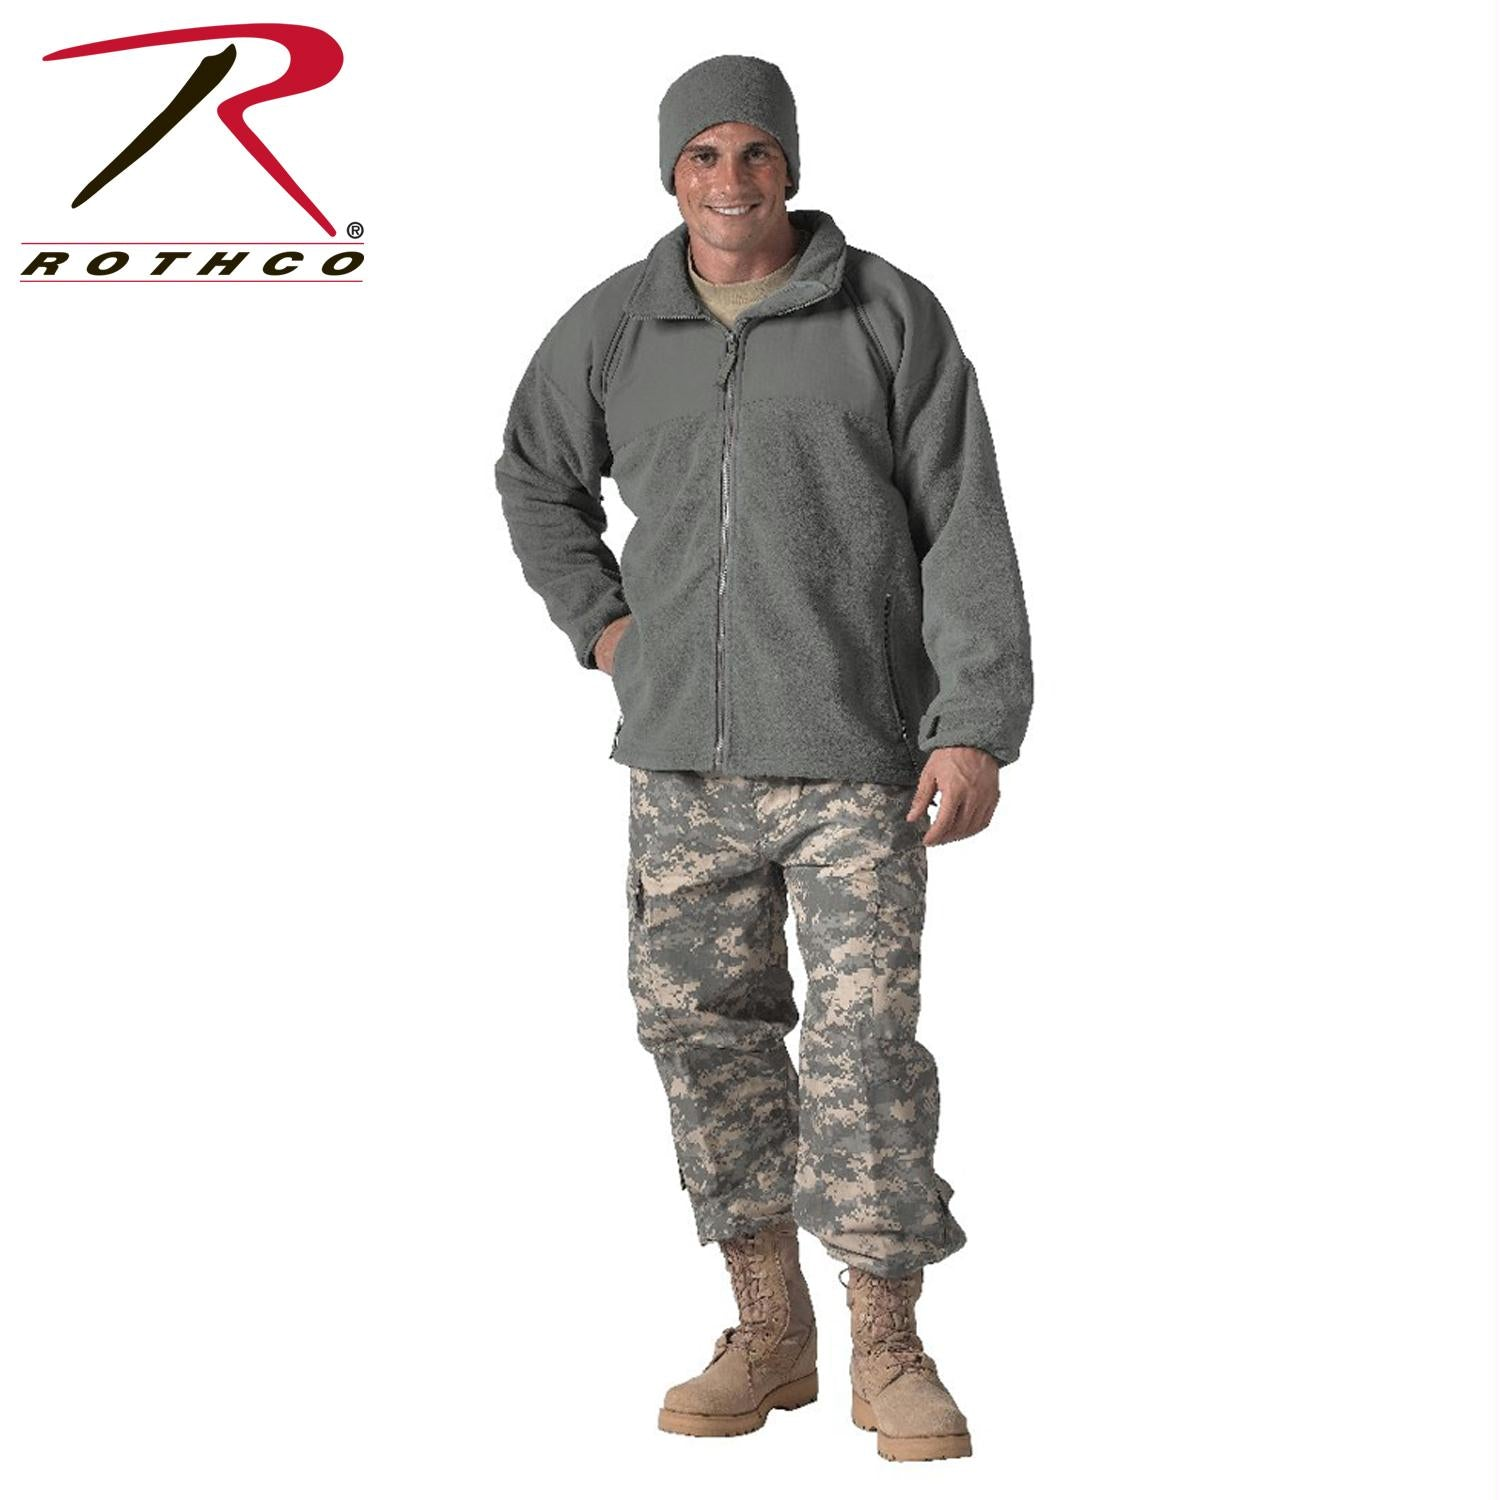 Rothco Military ECWCS Polar Fleece Jacket/Liner - Foliage Green / S